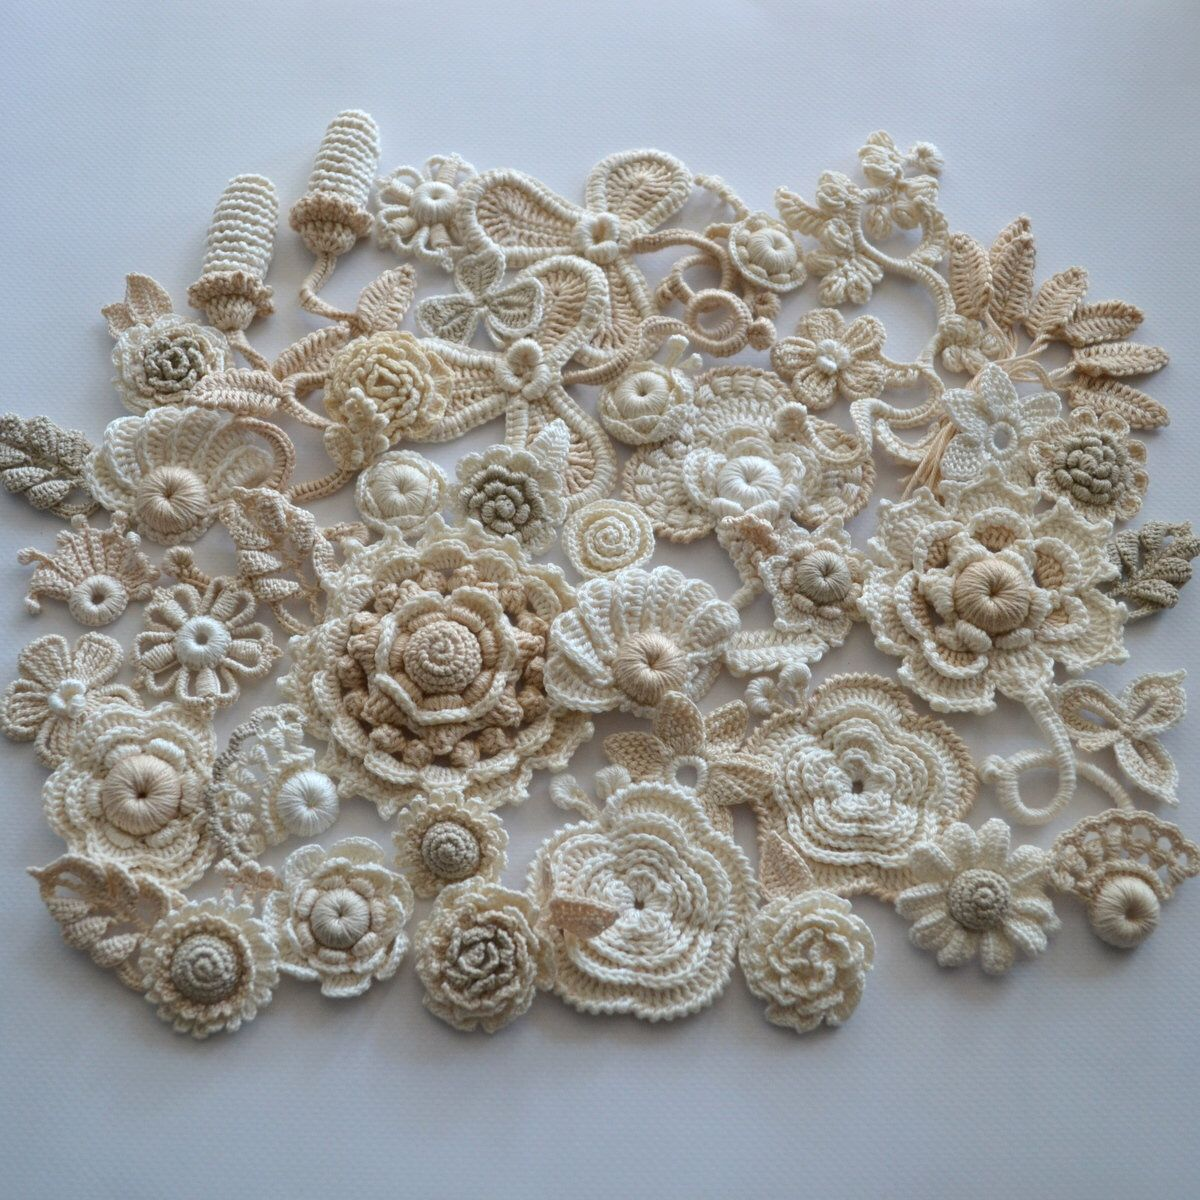 Boho Wedding Crochet flower Irish Crochet 45 pcs Flower applique Irish lace Flower necklace Crochet set Flower art Rose #irishcrochetflowers